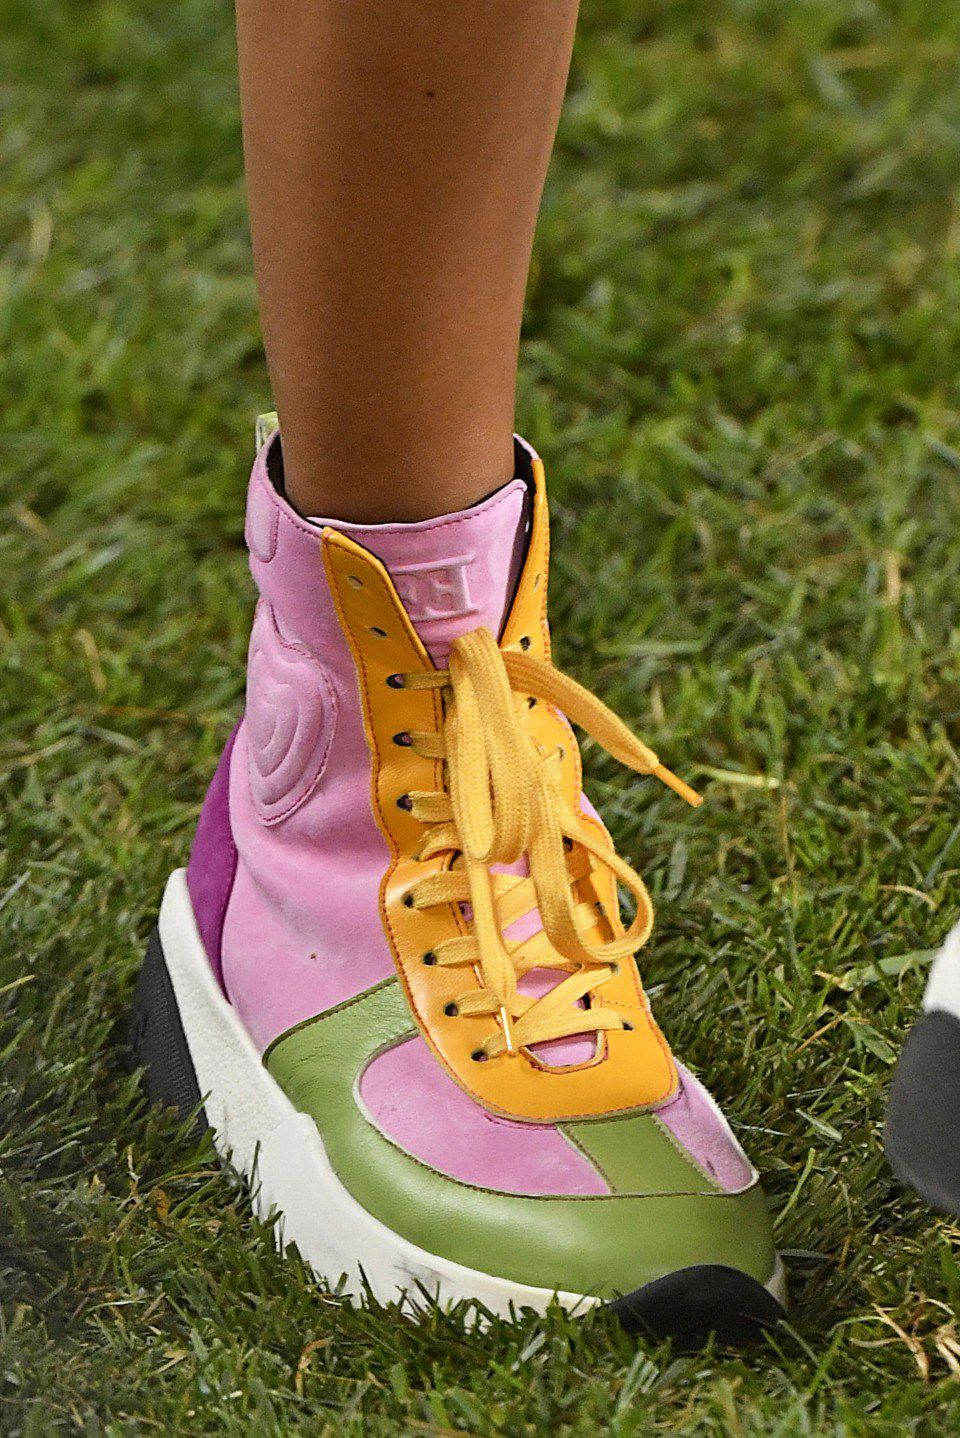 At Escada  these sneakers weren t cute  They didn t make a clever     Sneakers  At the Escada Spring Summer 2019 Collection   Jonas  Gustavsson MCV Photo for The Washington Post